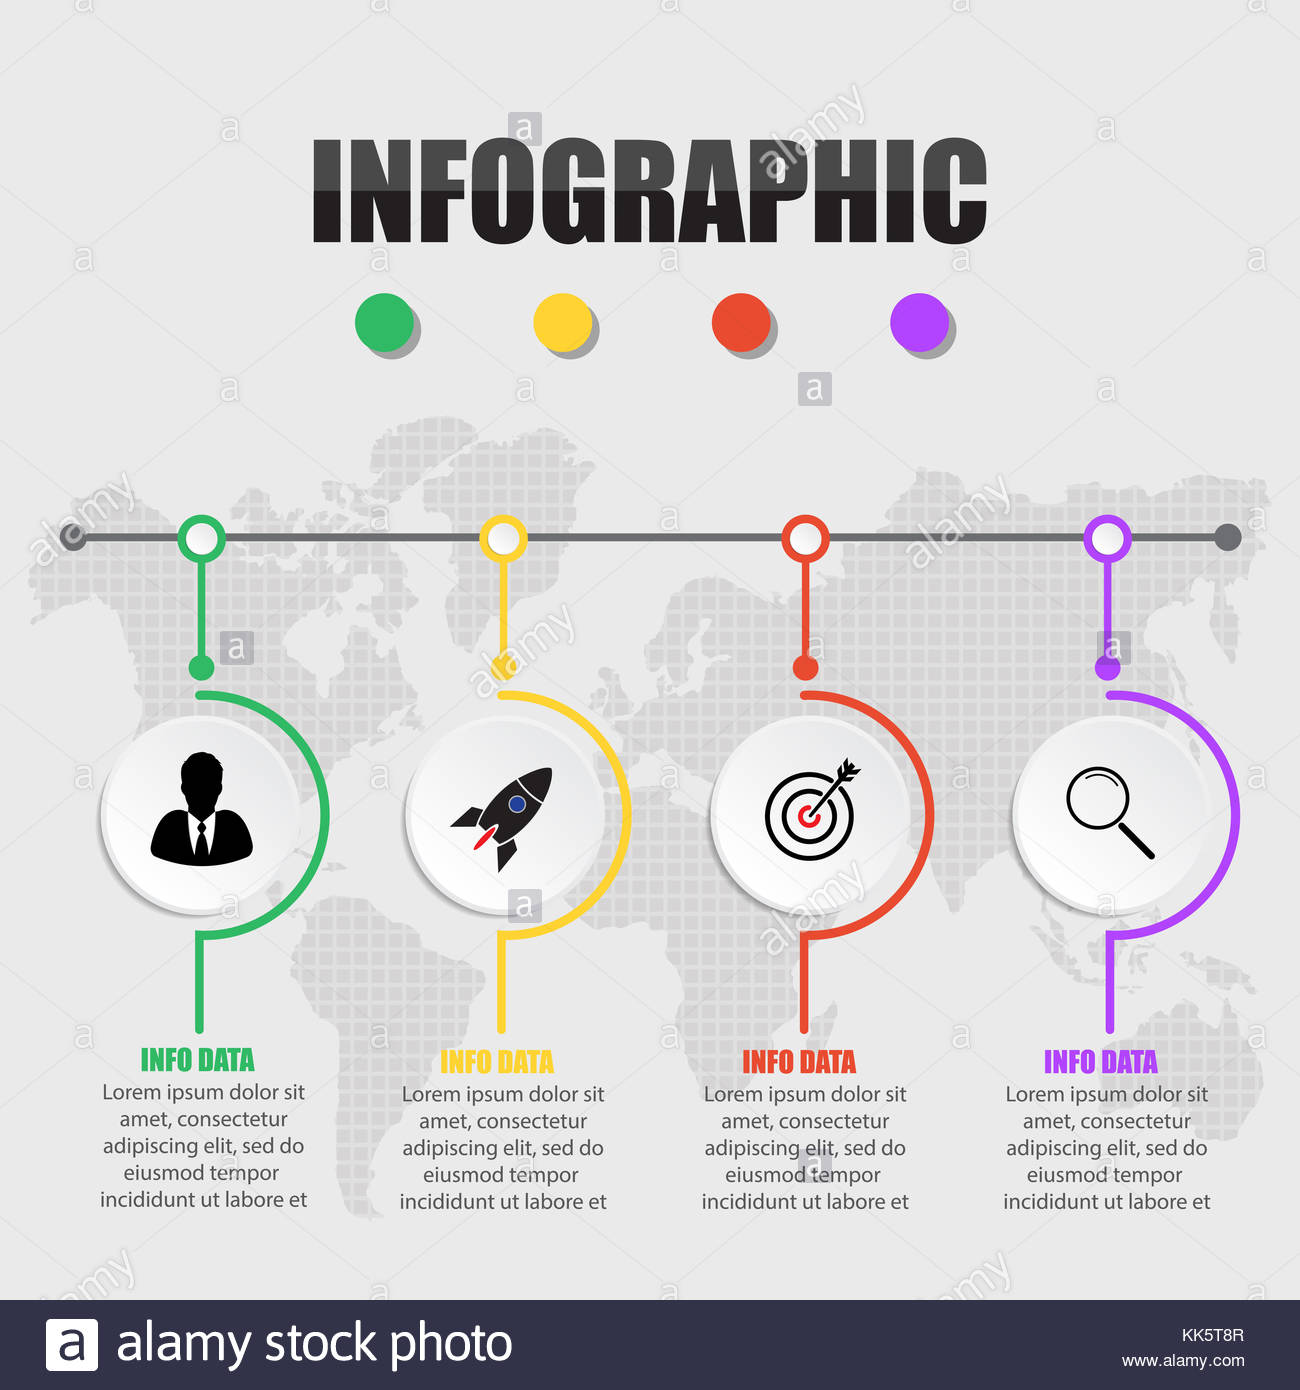 Business concept timeline infographic template realistic paper 4 business concept timeline infographic template realistic paper 4 steps infographic vector banner can be used for workflow layout diagram presenta fbccfo Images